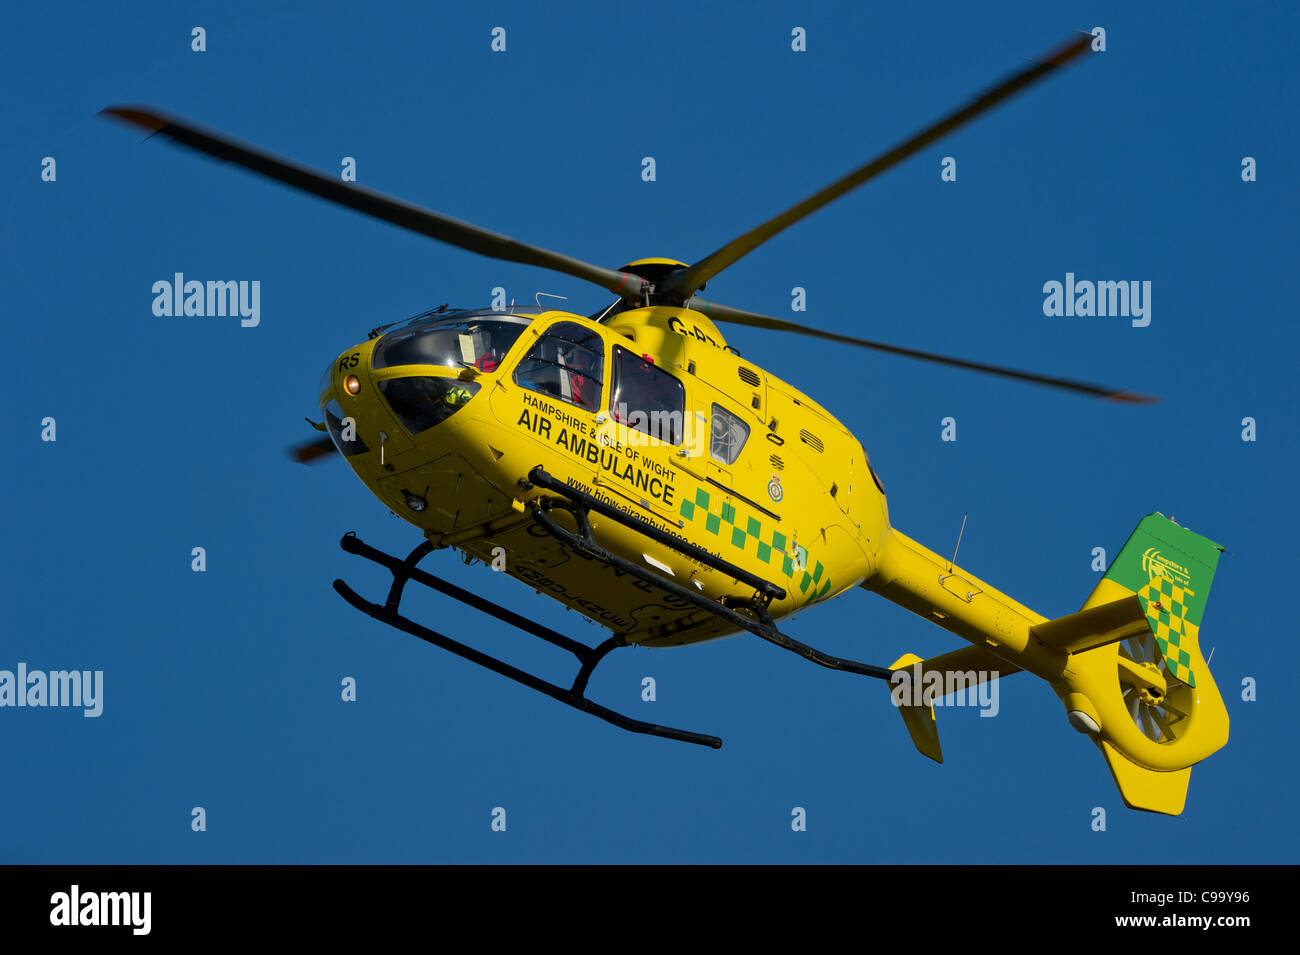 Hampshire and isle of wight air ambulance comes in to land at Southampton General hospital - Stock Image